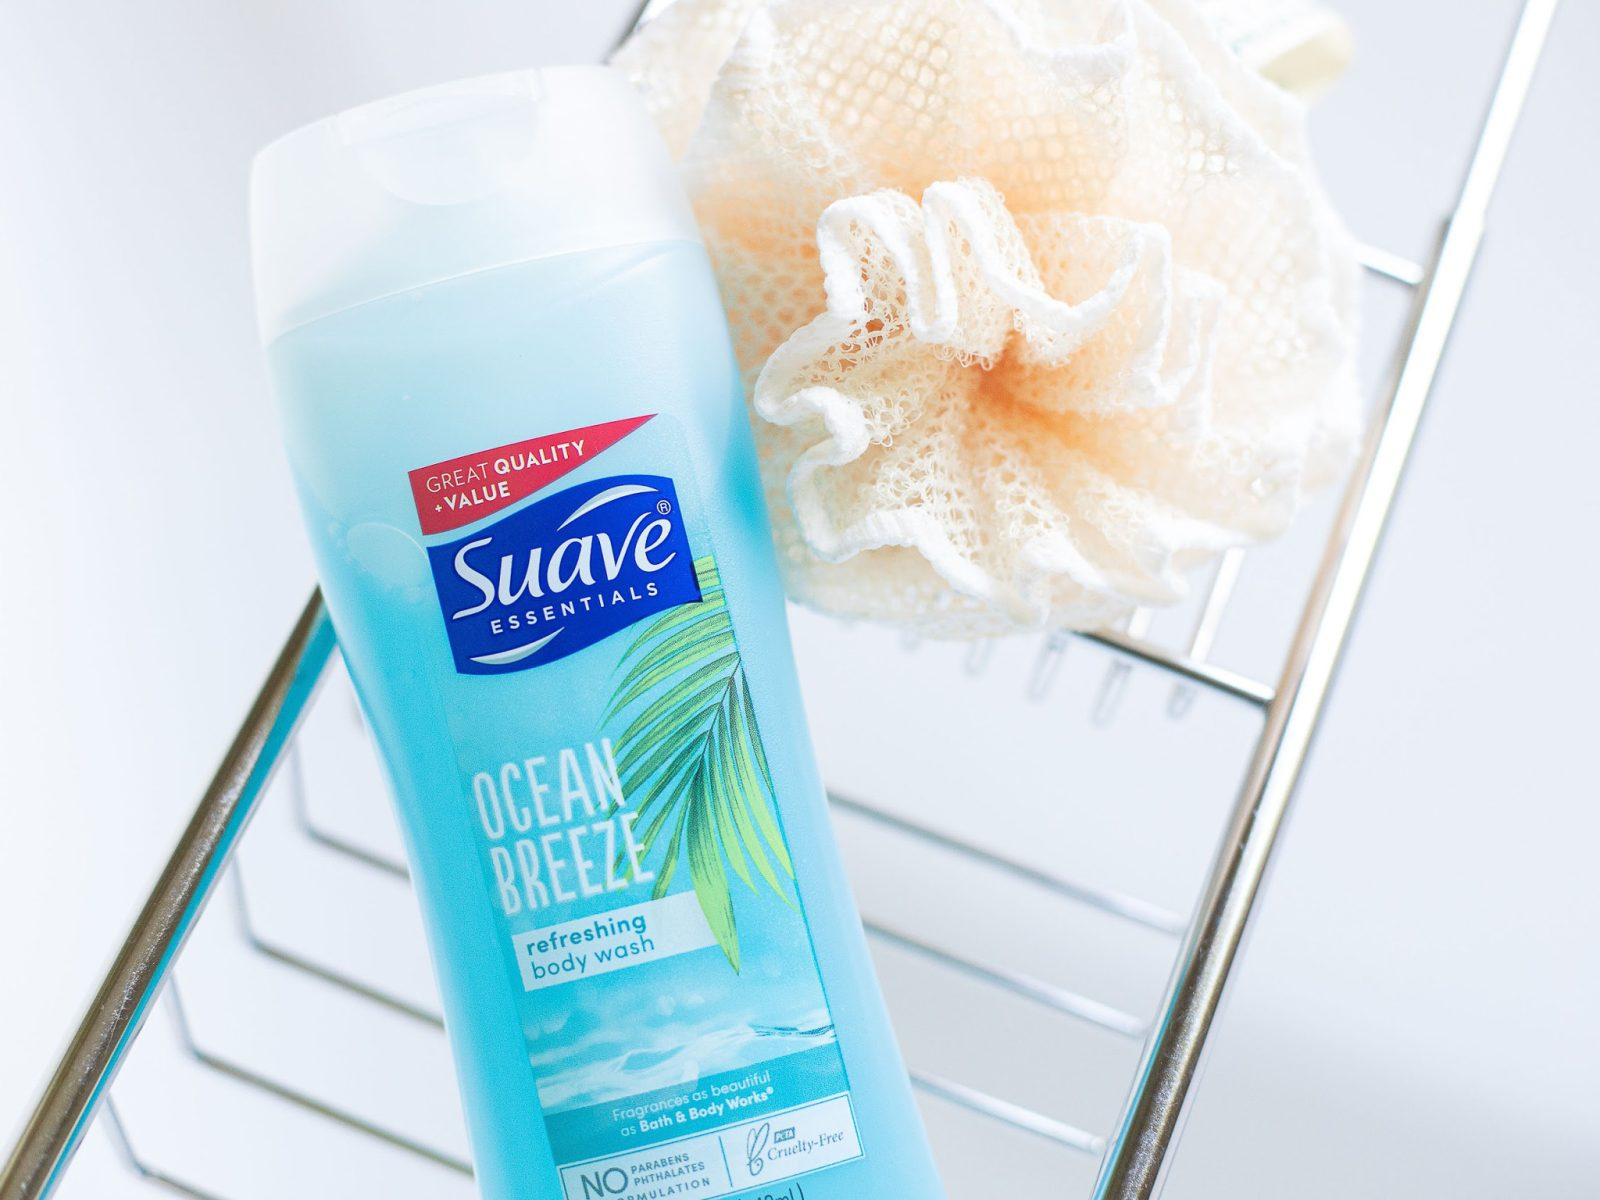 Get Suave Body Wash For Just 69¢ At Publix on I Heart Publix 1